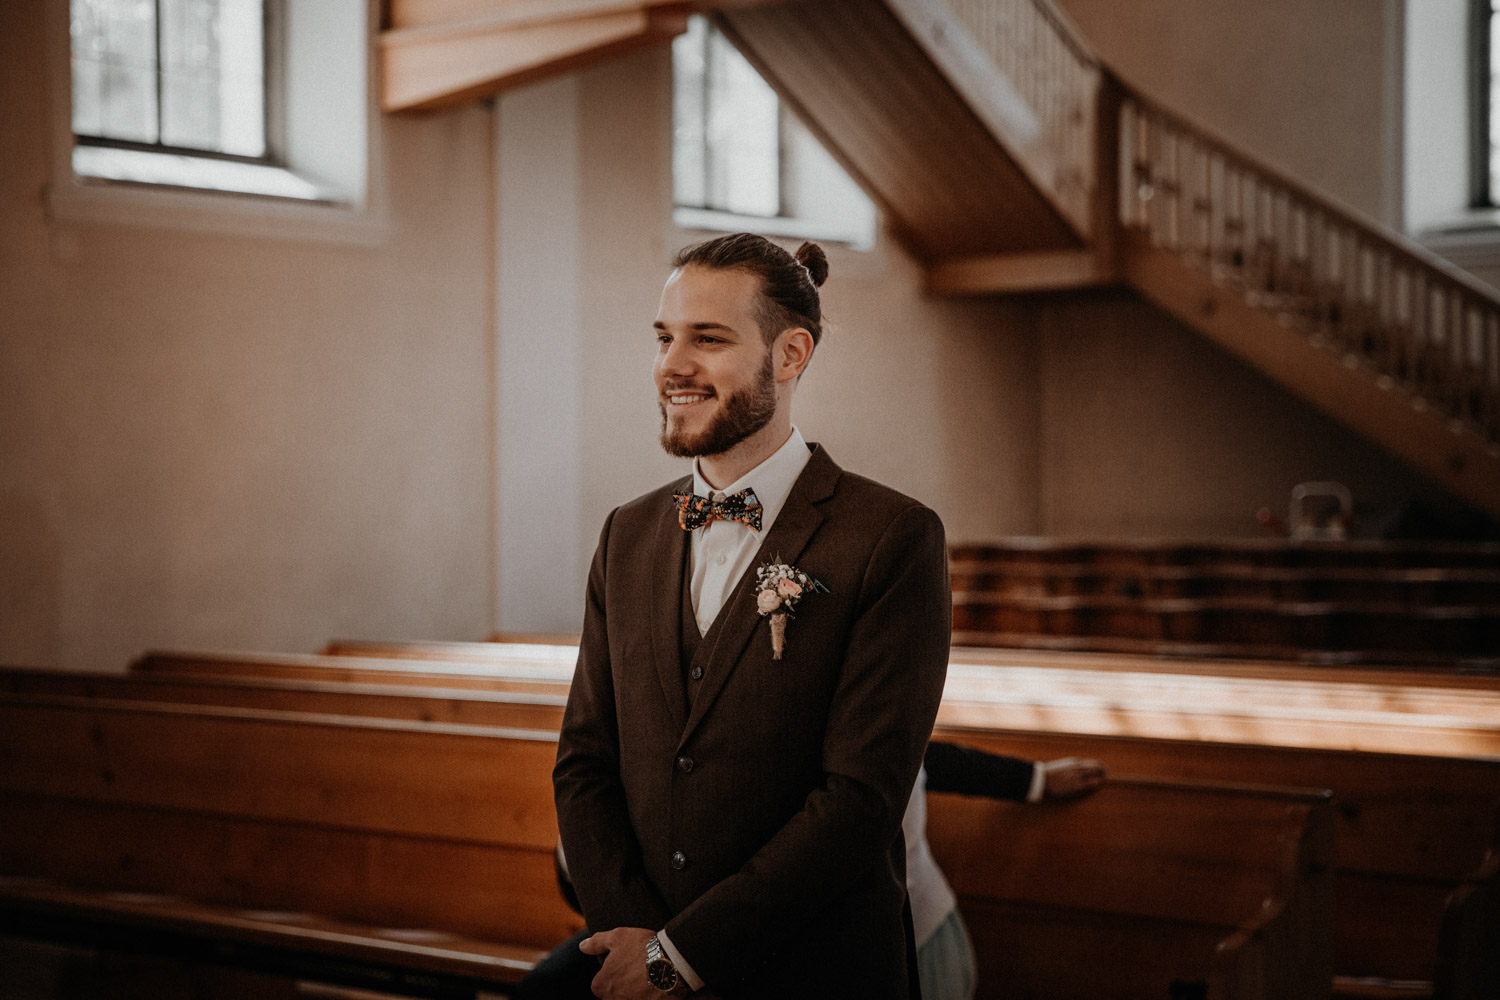 groom wedding photographer switzerland